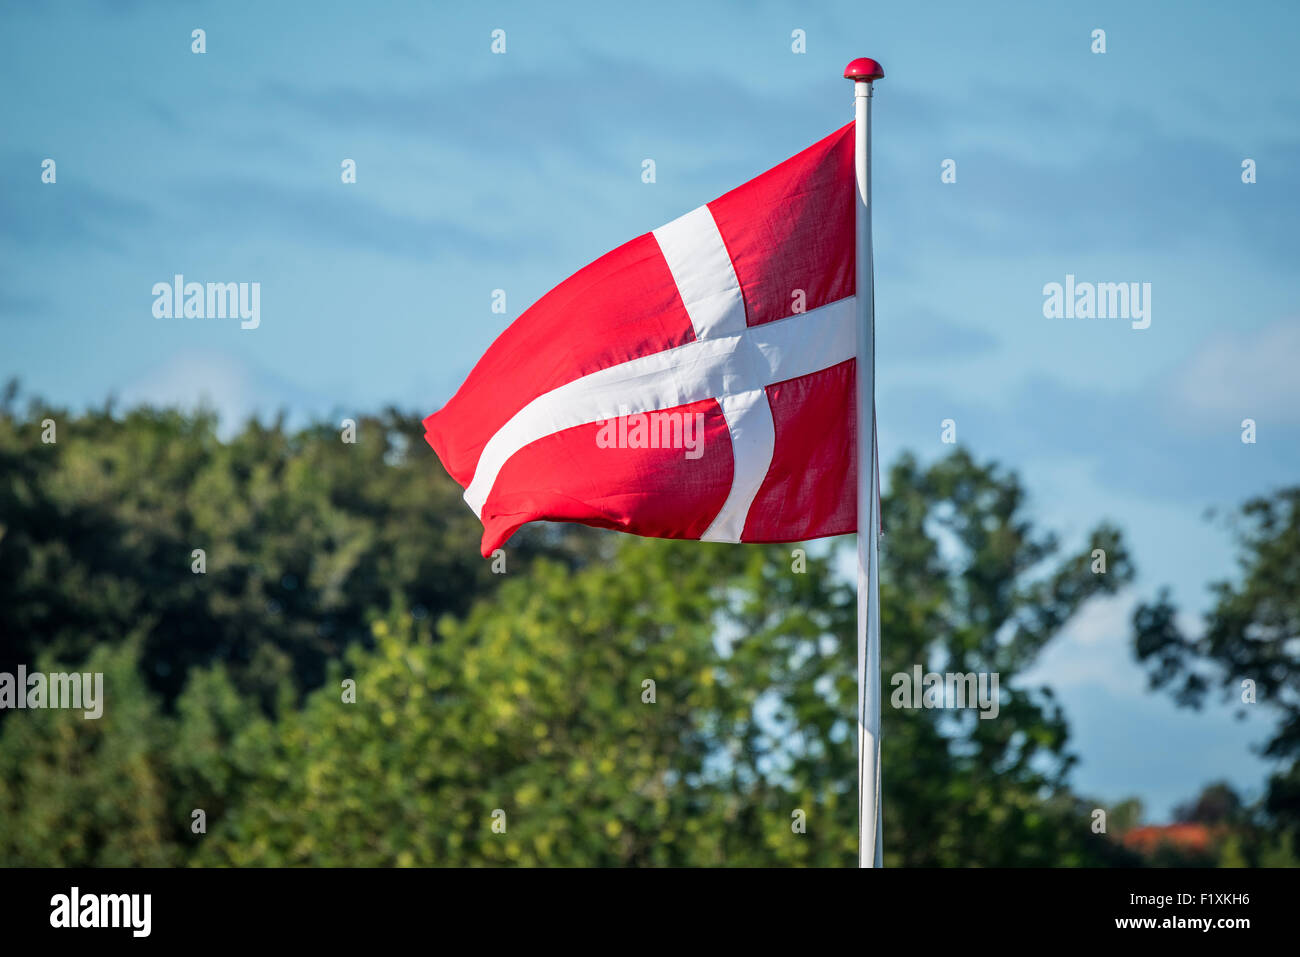 Flag of Denmark in the wind with trees in the background - Stock Image